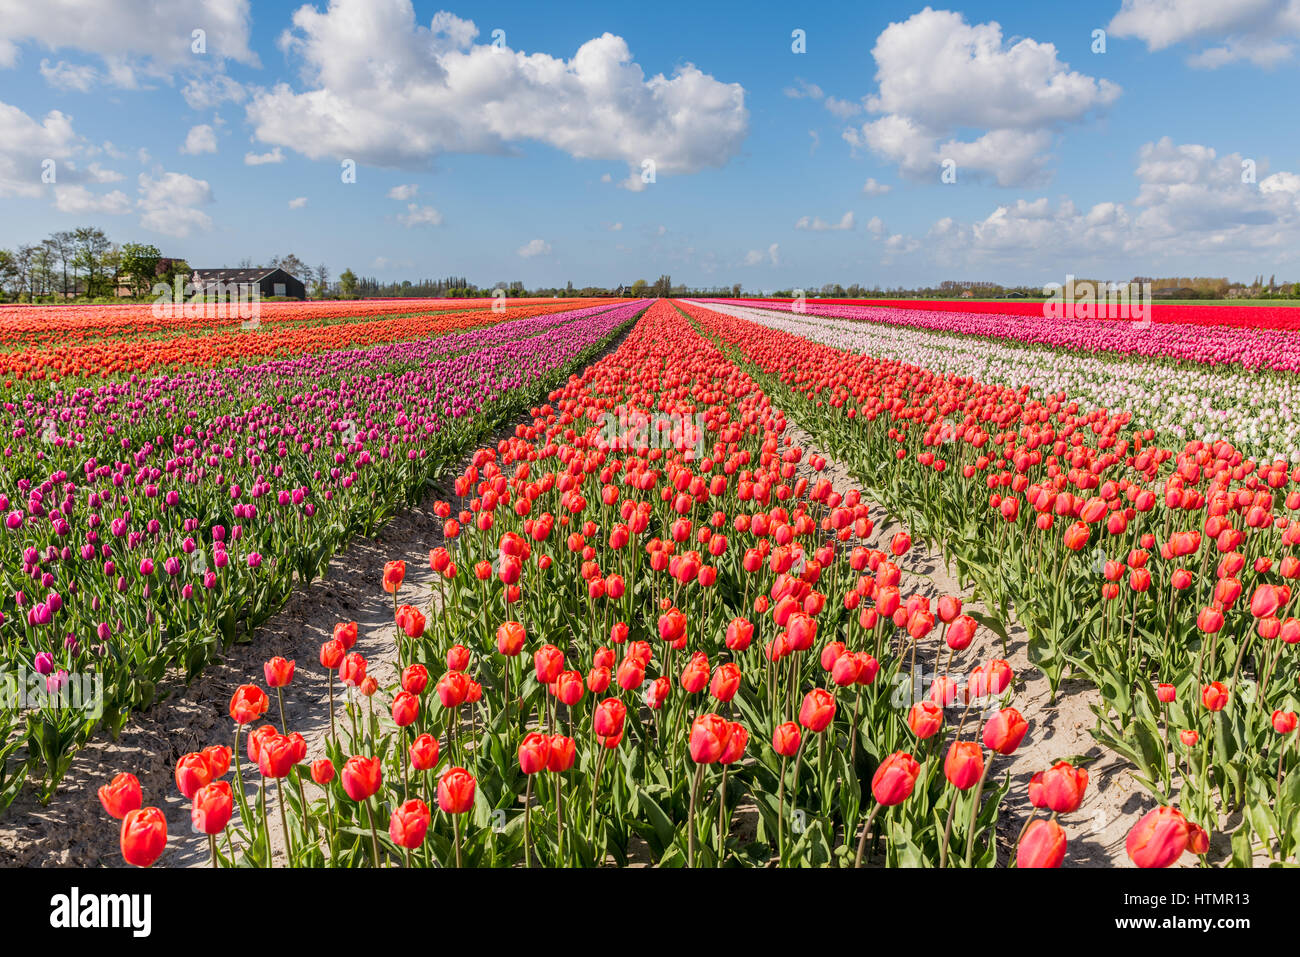 Flowering tulip fields in Holland with a blue sky and typical white clouds above. Stock Photo